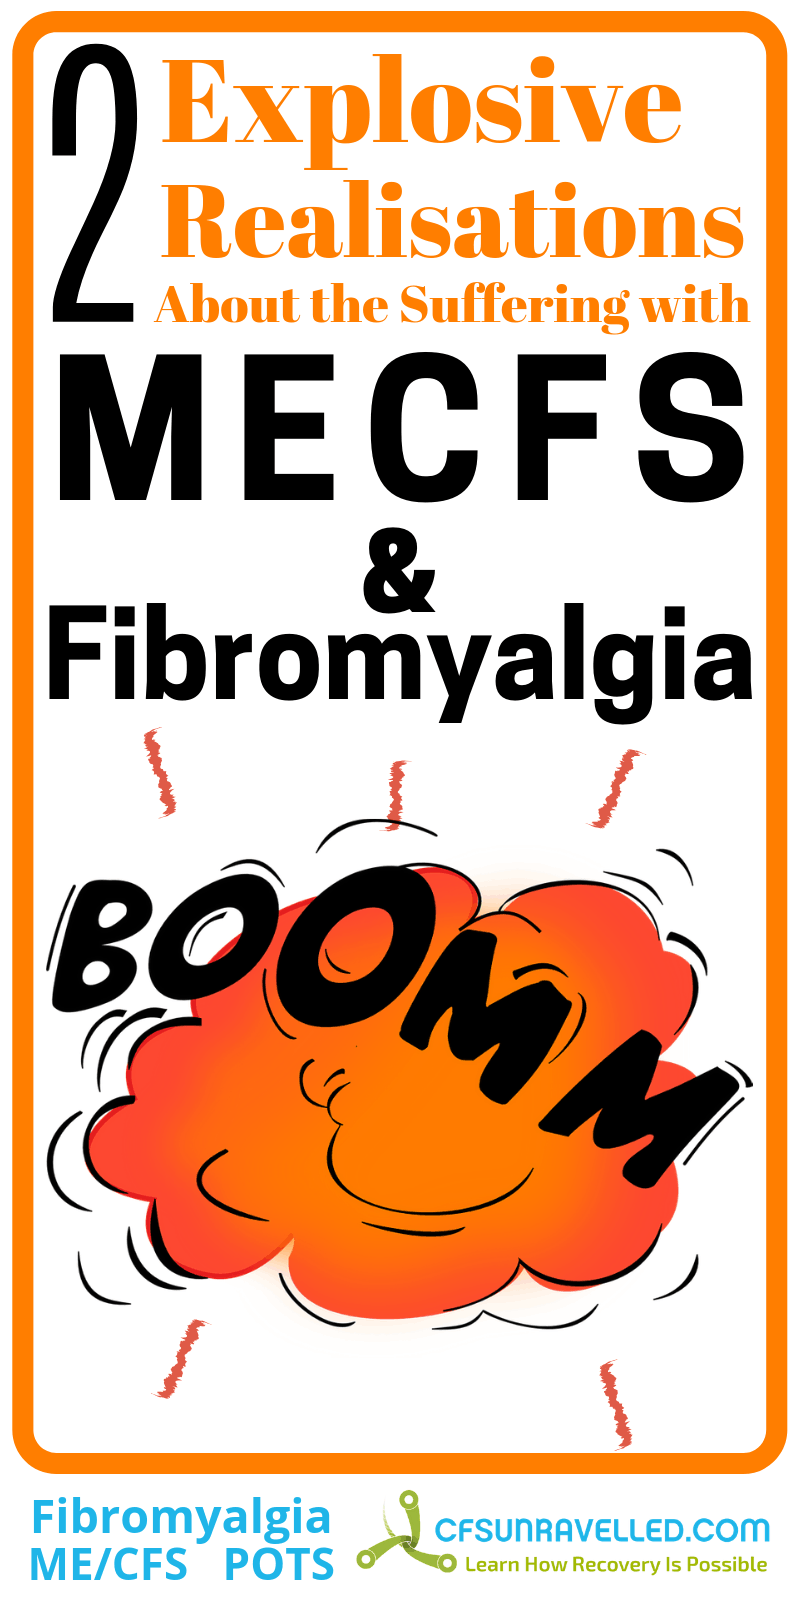 poster with explosion and boom about fibromyalgia mecfs realisation